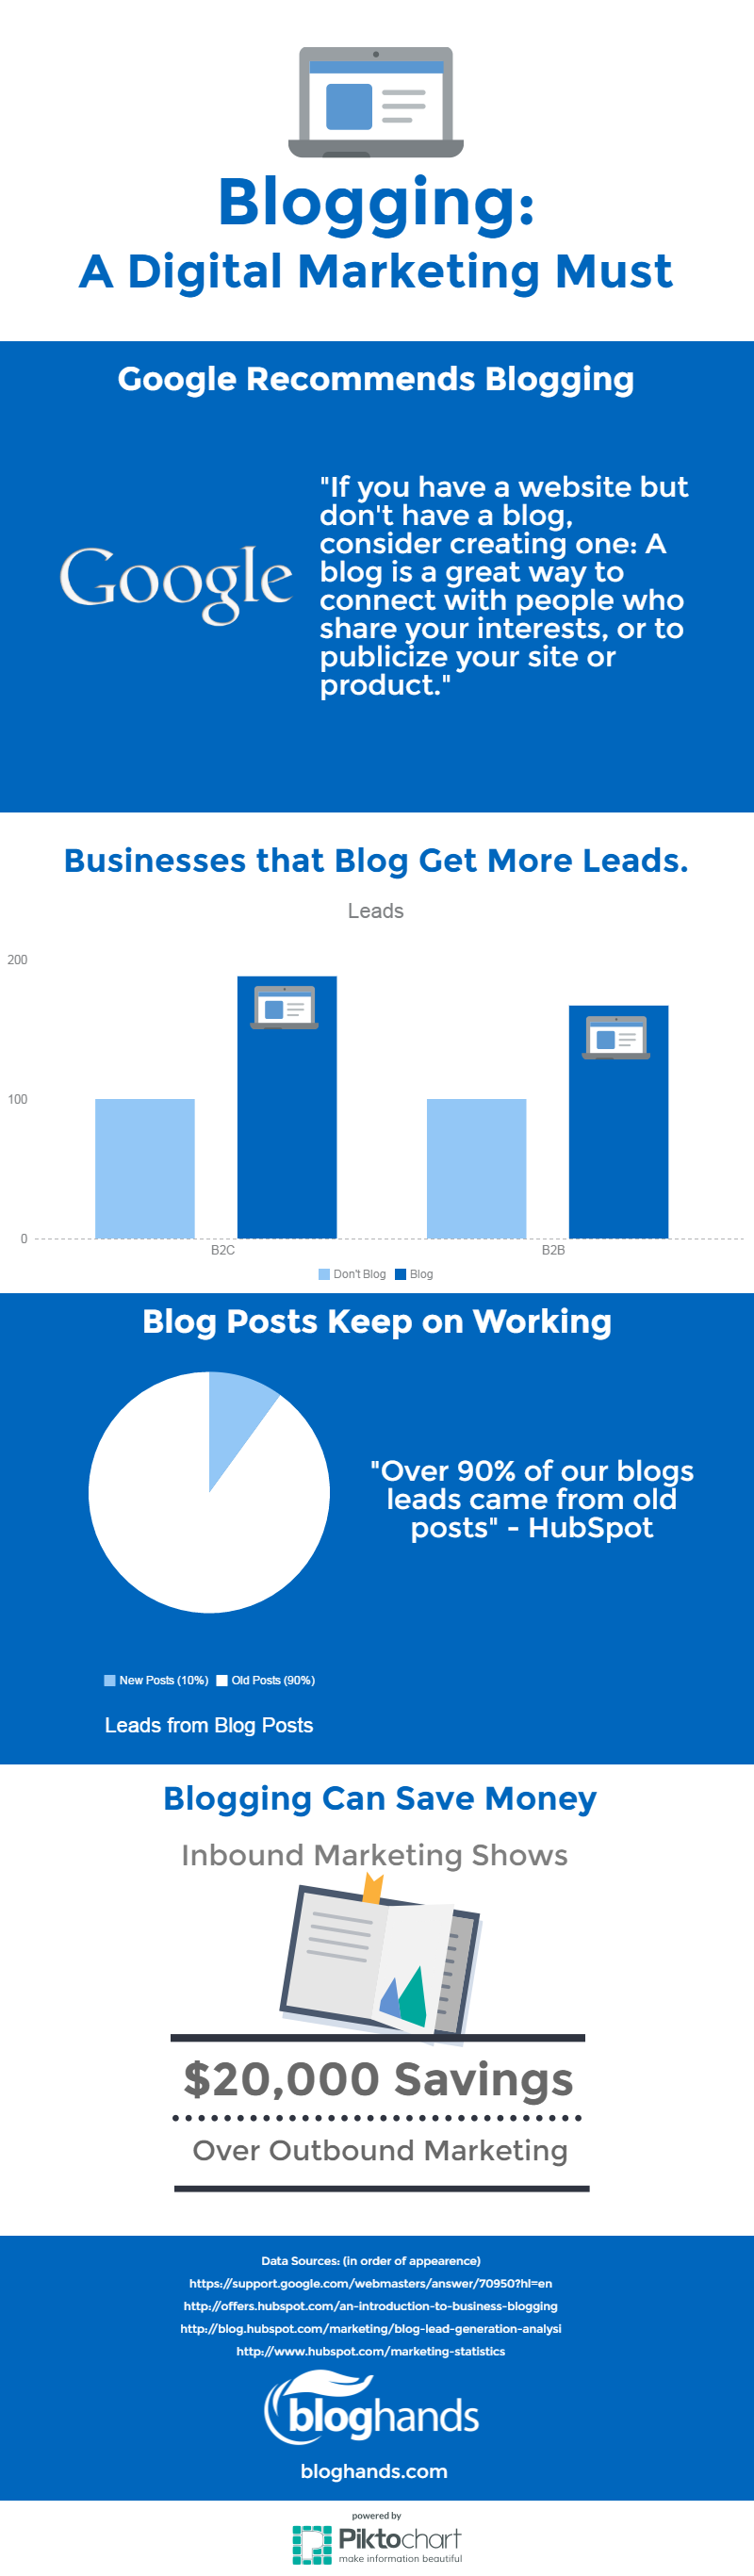 Infographic: Blogging is a Digital Marketing Must